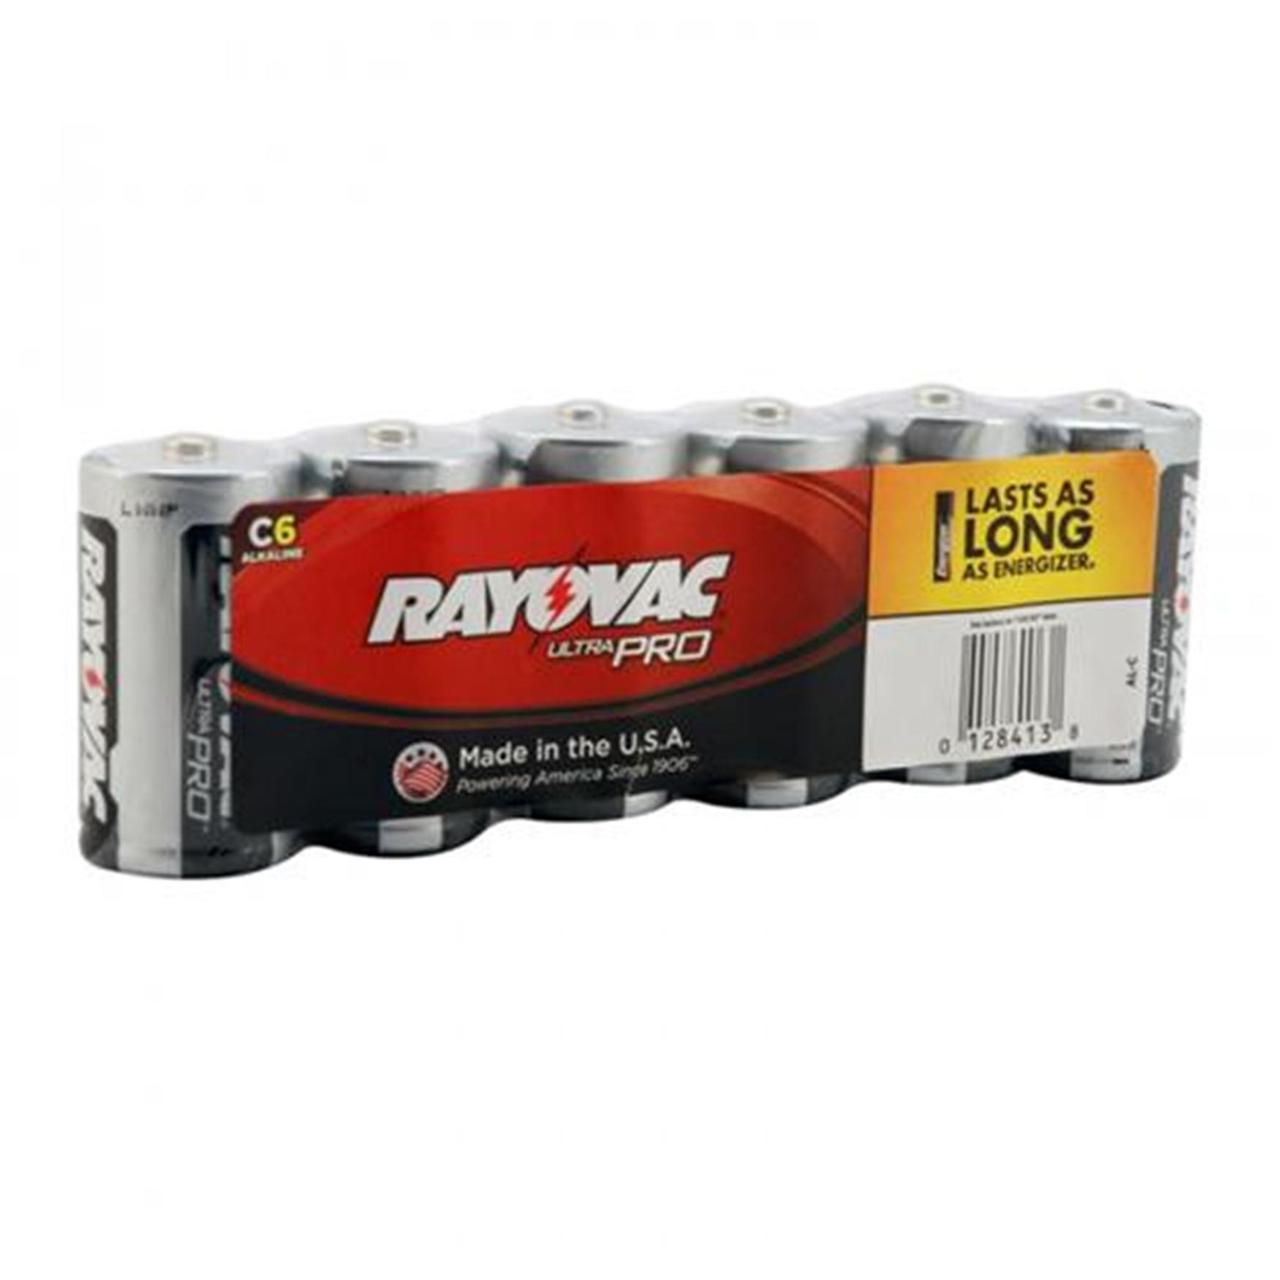 Rayovac  UltraPRO Alkaline C Batteries 6-Pack + FREE SHIPPING!